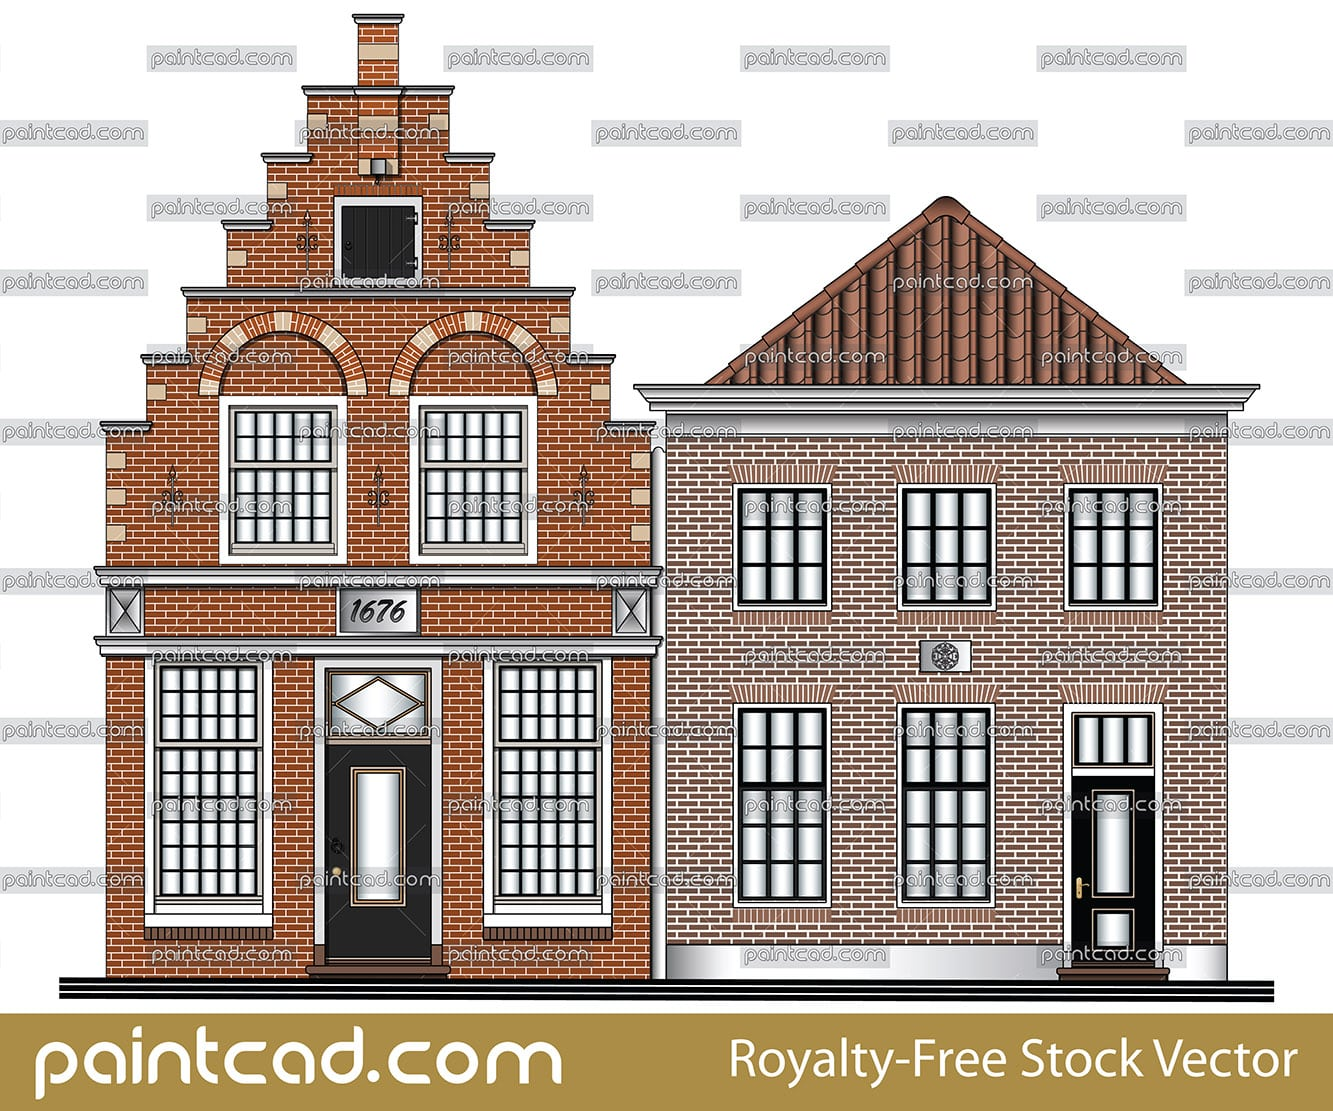 Classic low-rise canal houses from Amsterdam, Netherlands - vector illustration